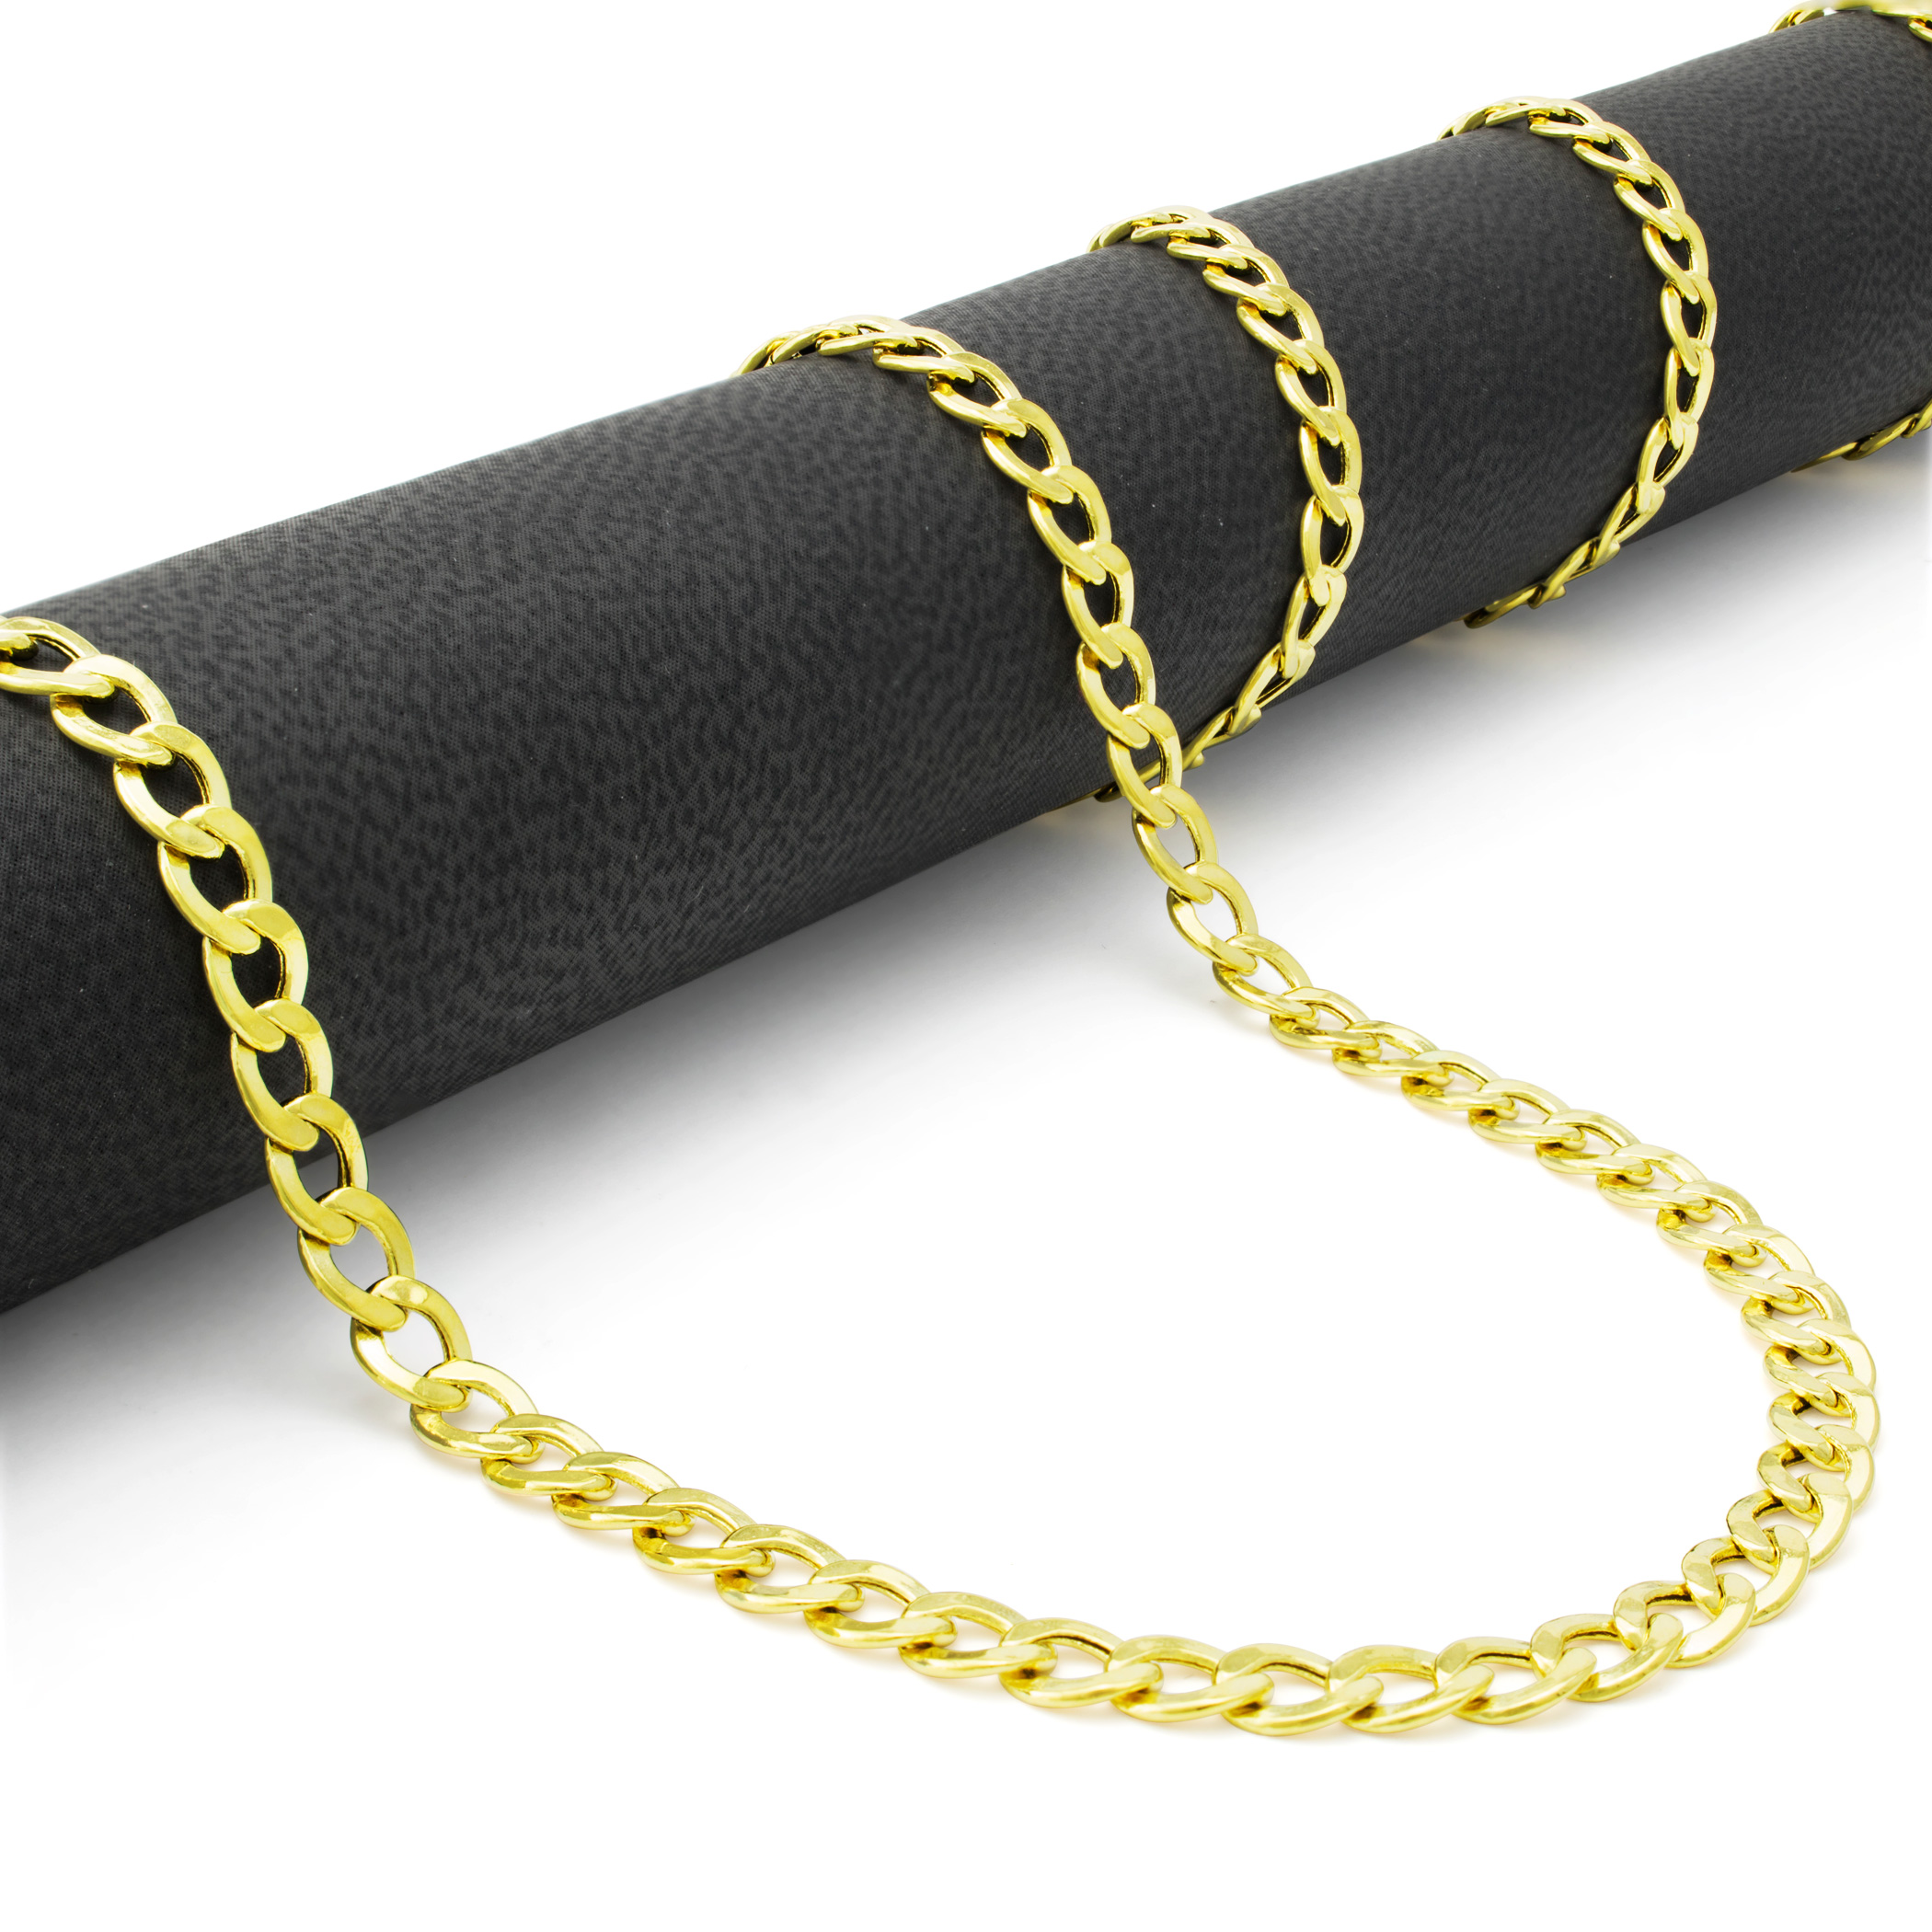 10K-Yellow-Gold-2mm-11mm-Cuban-Curb-Chain-Pendant-Necklace-Men-Women-16-034-30-034 thumbnail 12